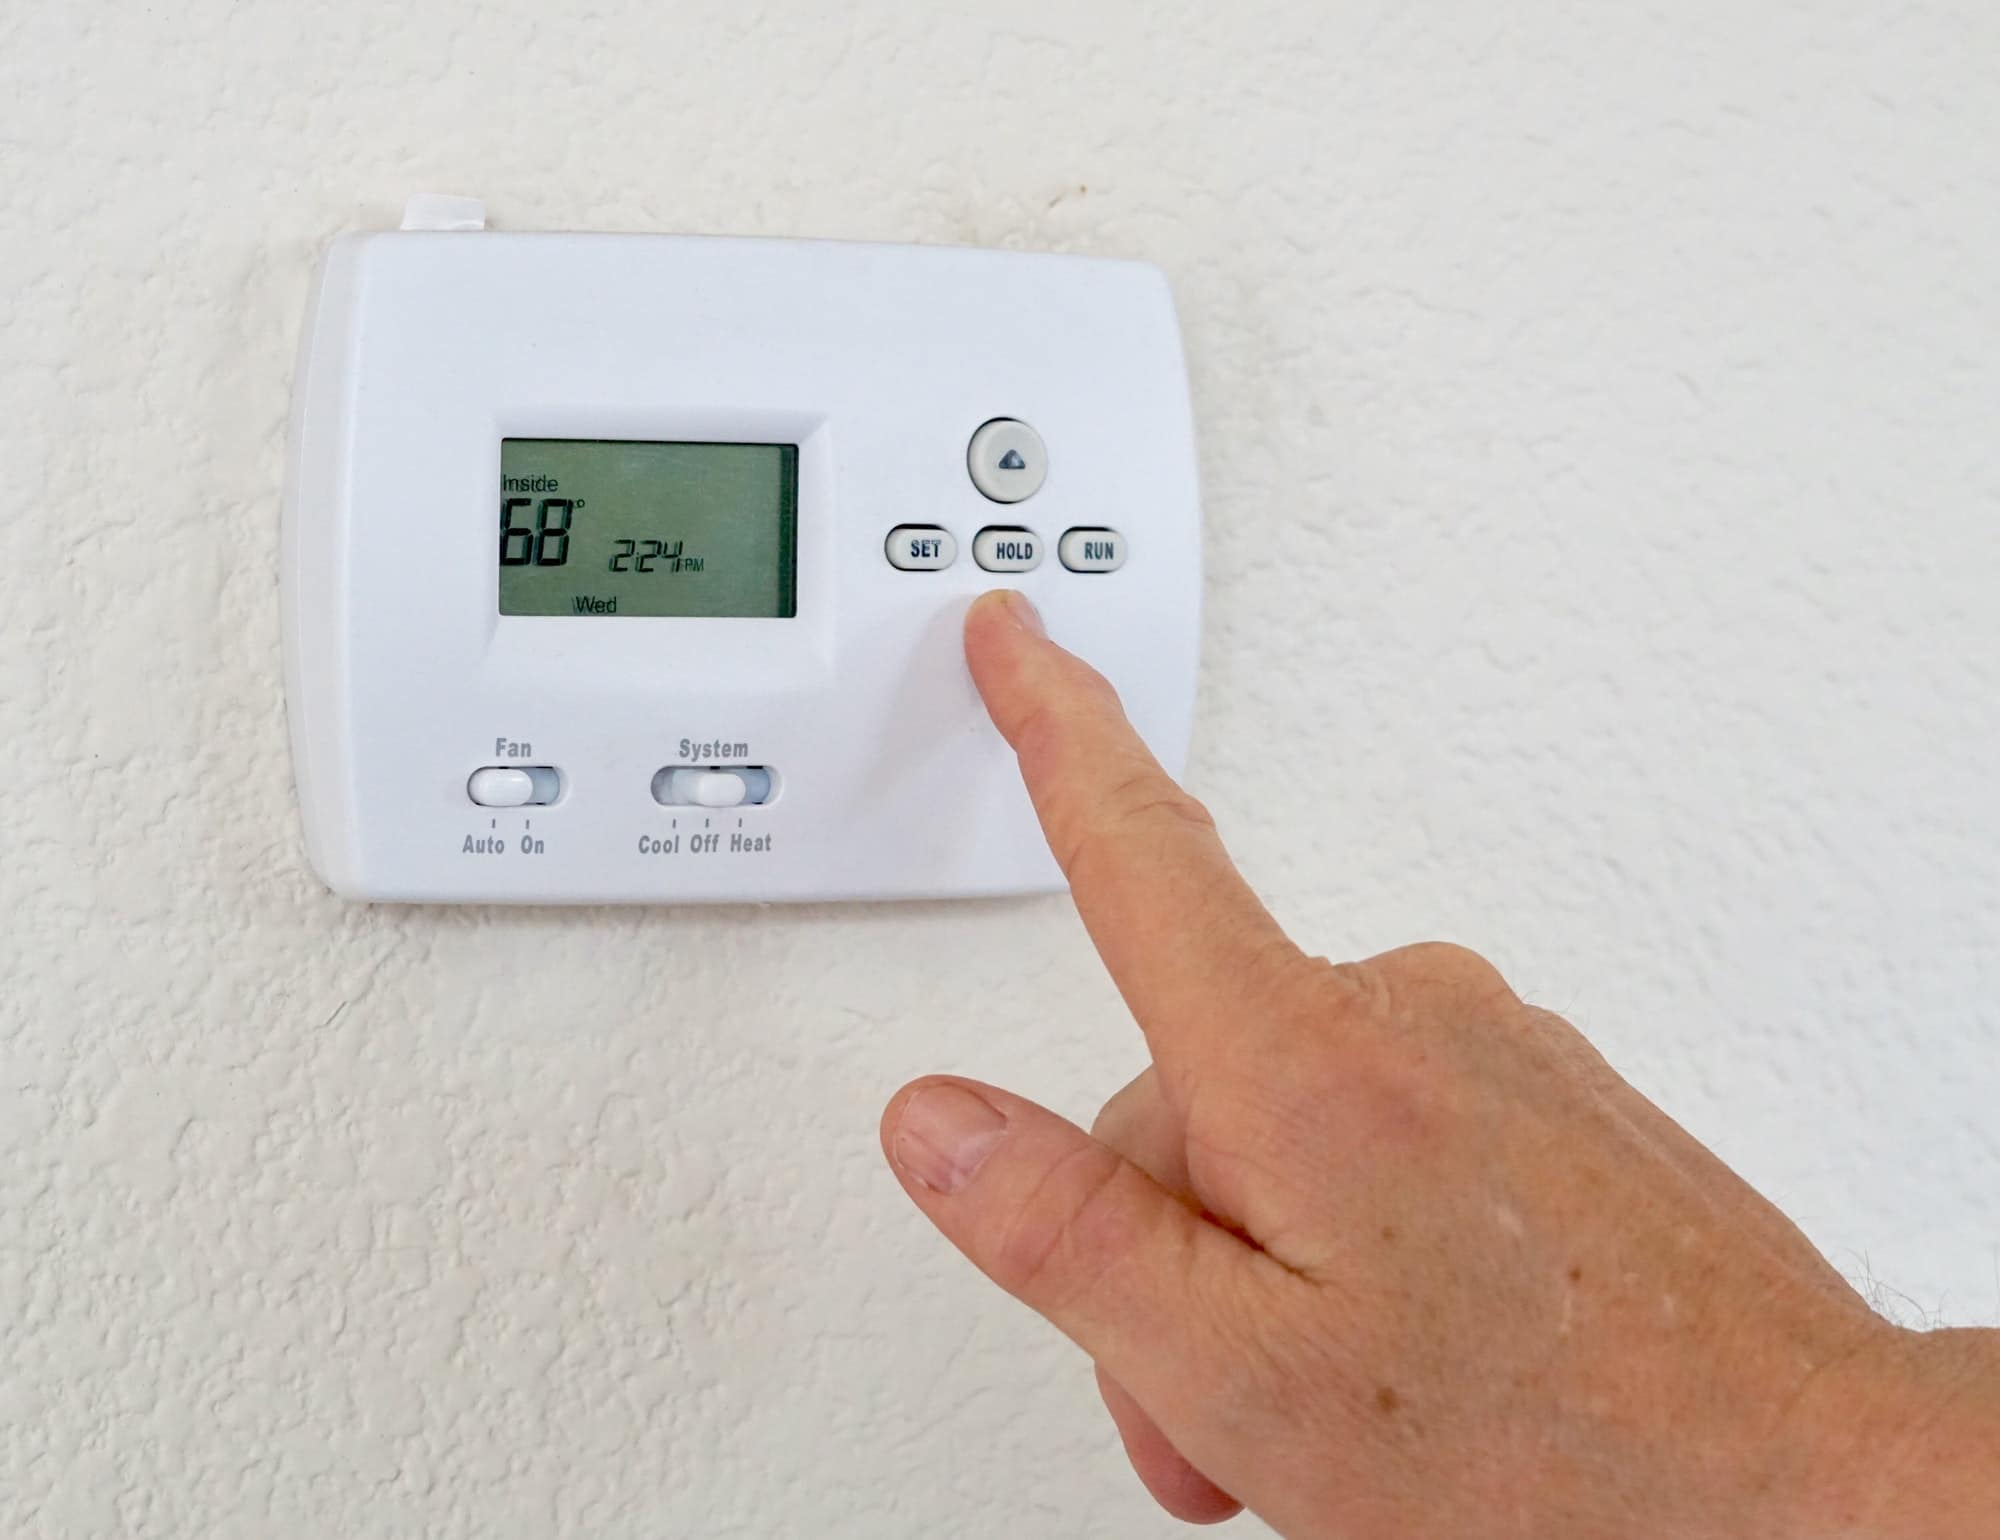 Adult male hand with finger pointed on a thermostat